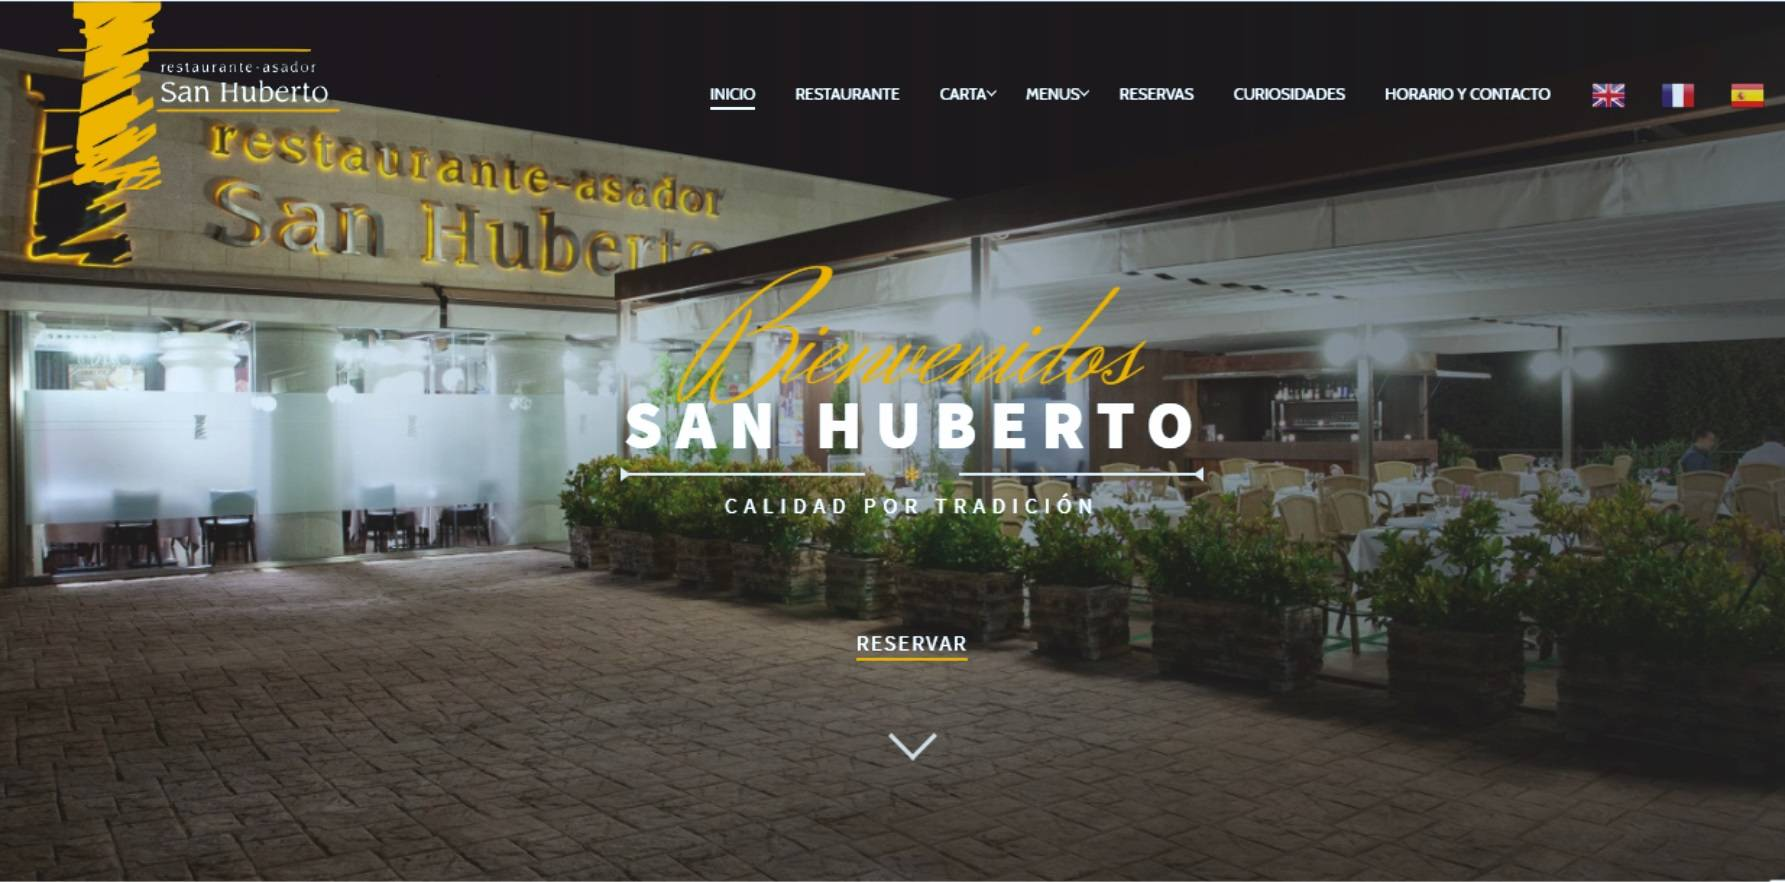 Paginas web restaurantes bares hosteleria ciudad real